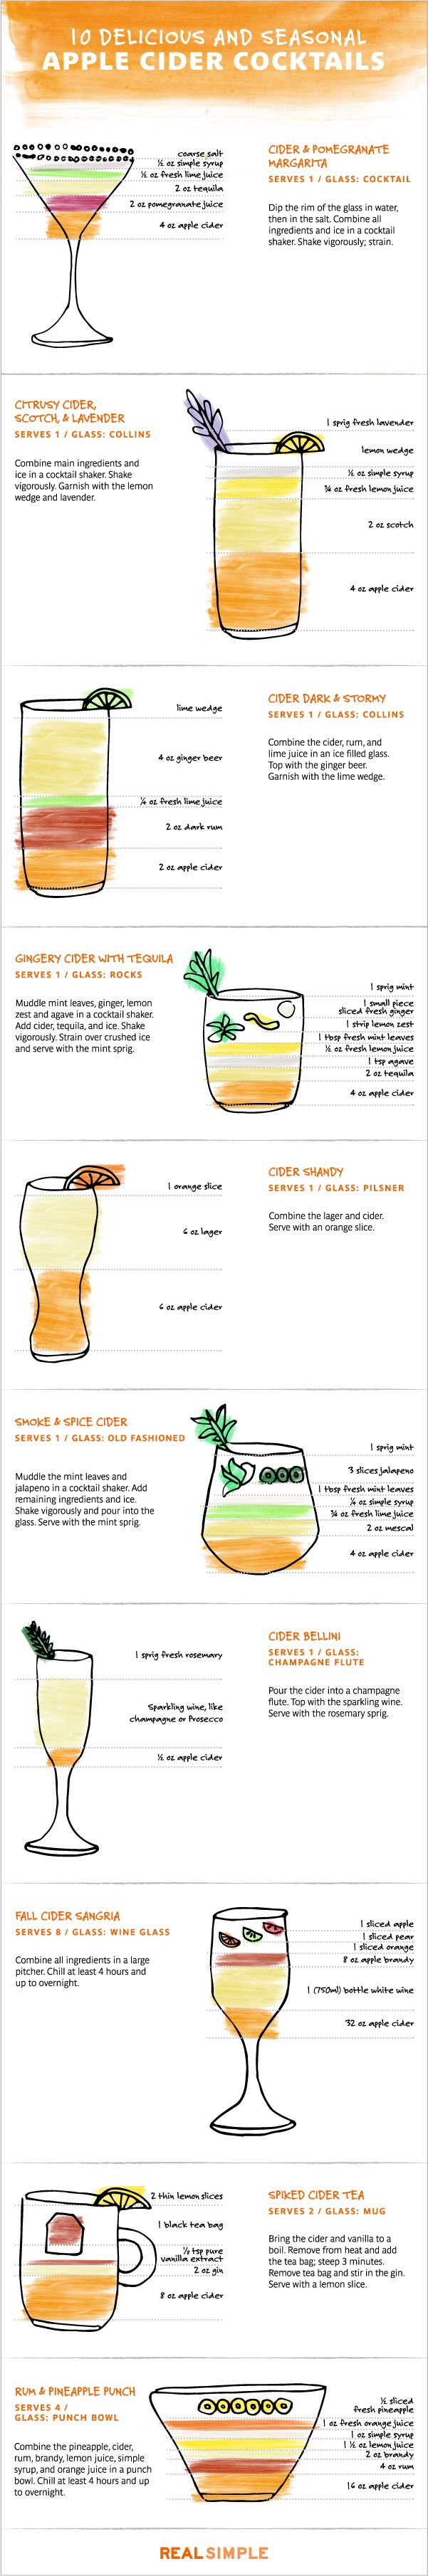 Apple Cider Cocktails by realsimple #Infographic #Cocktails #Apple_Cider